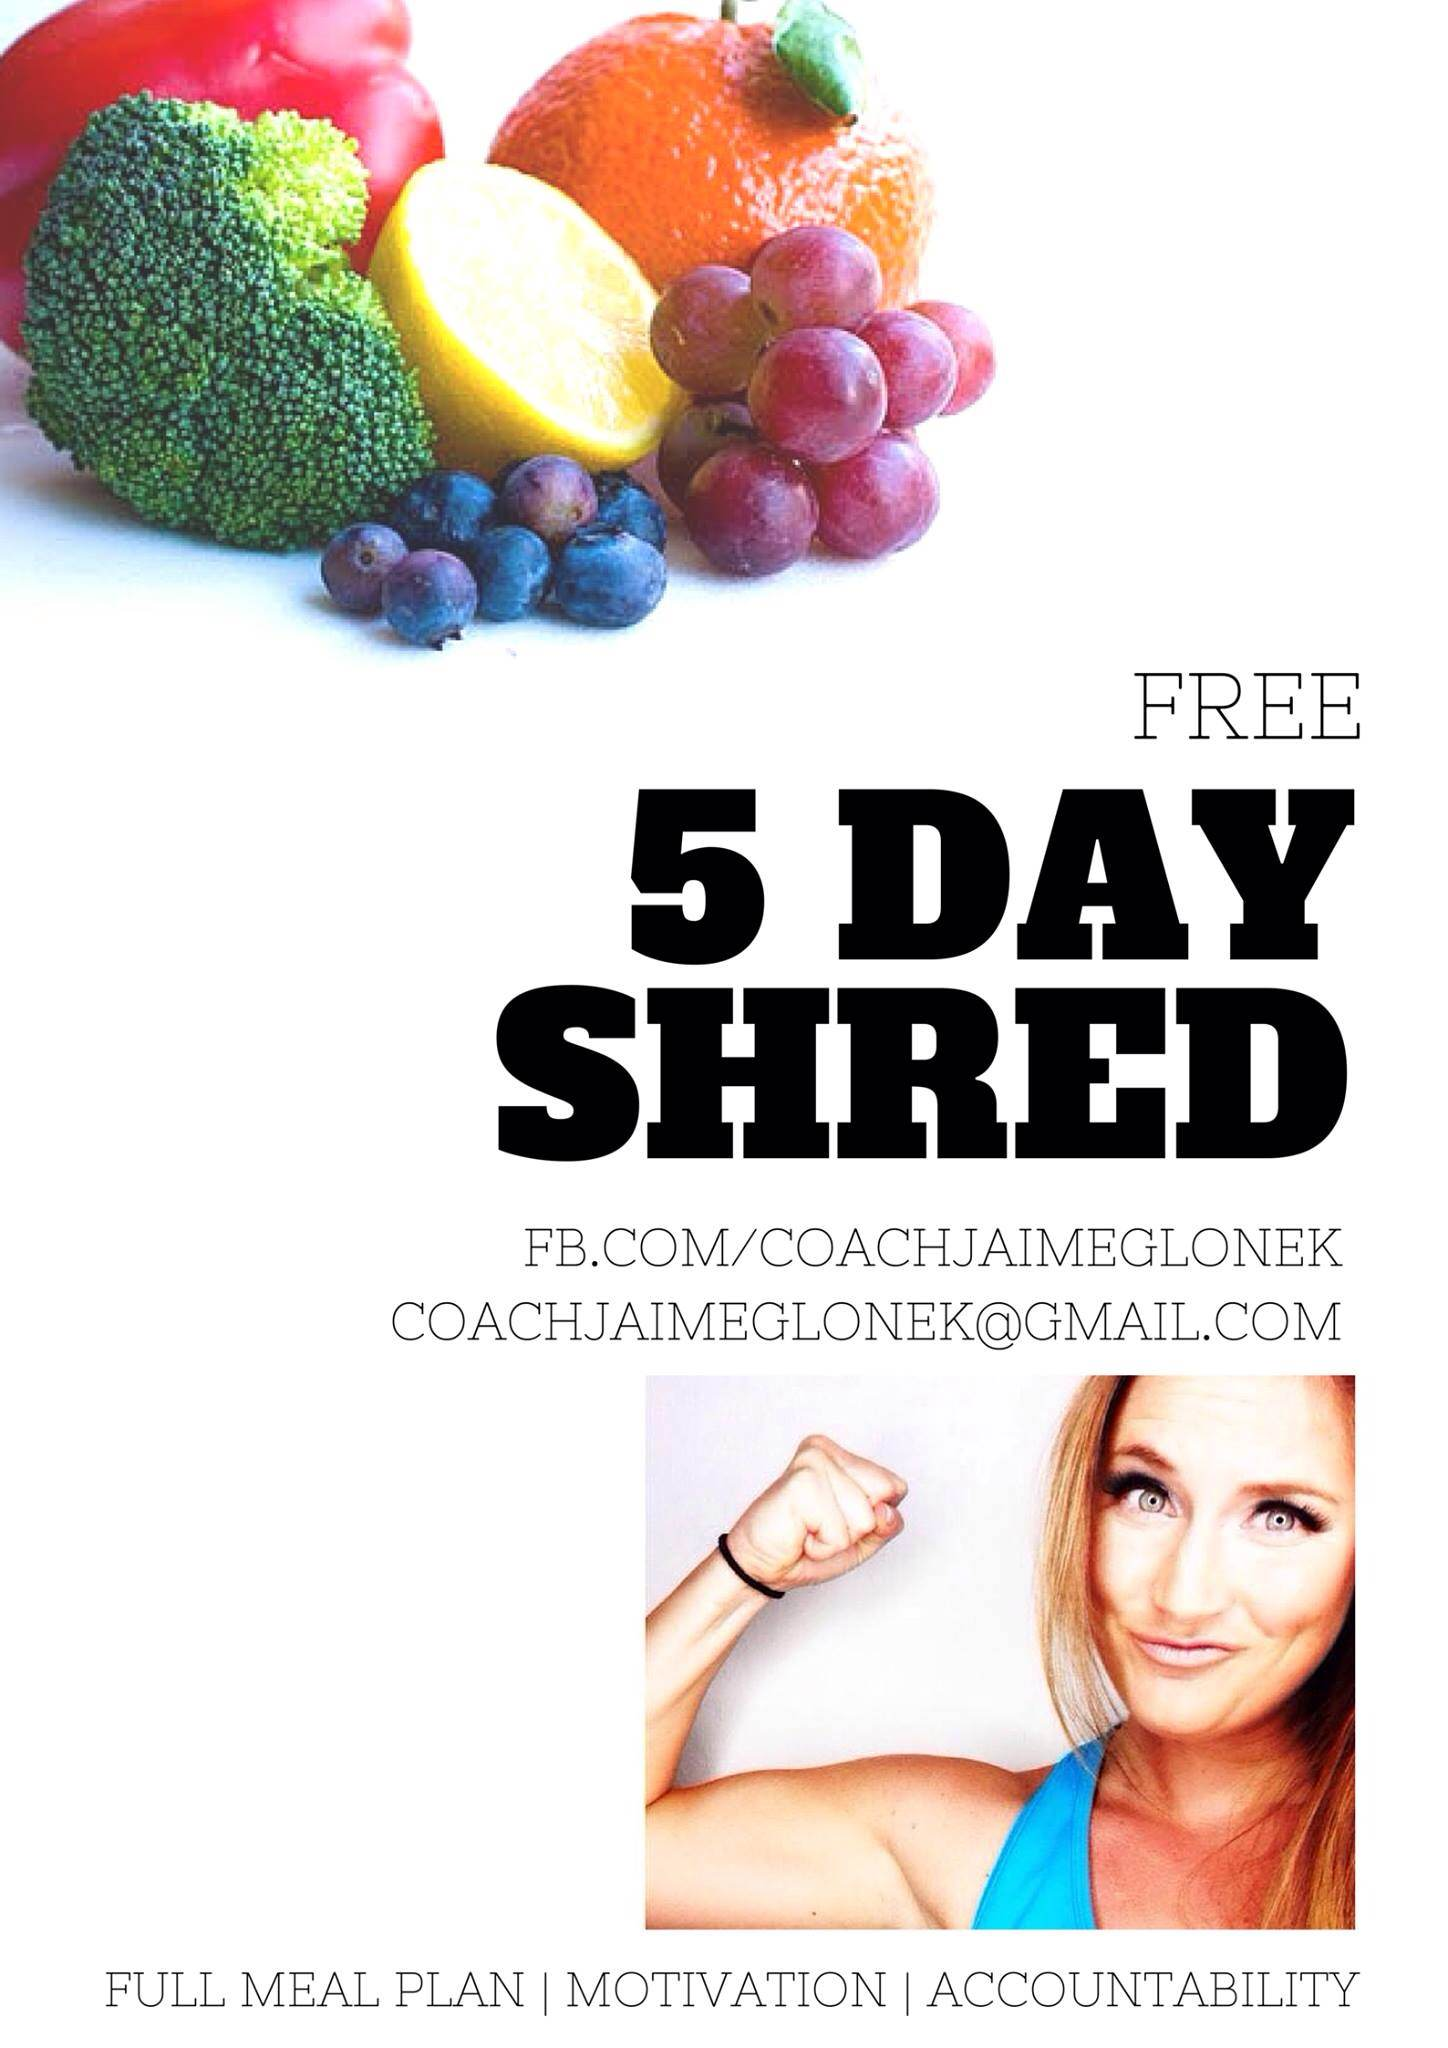 5 Day Shred // The Overwhelmed Bride Wedding Blog + Southern California Wedding Planner